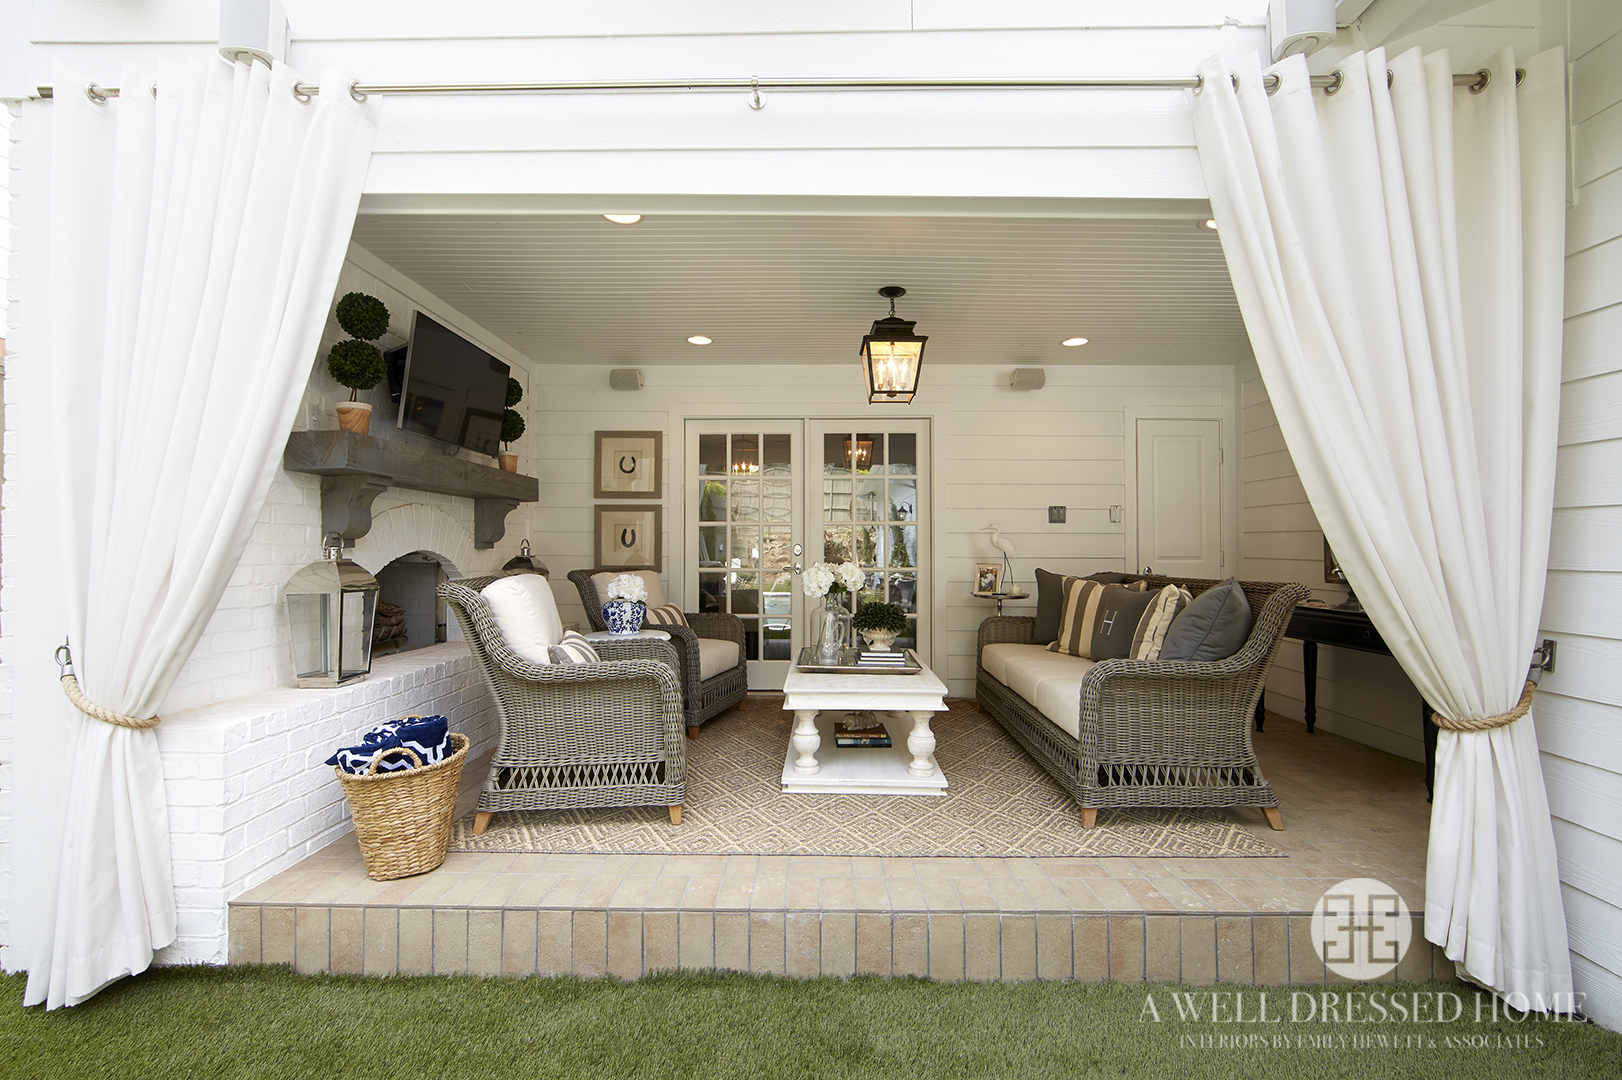 Our Farmhouse Renovation Reveal Part 2 - The Cabana — A Well Dressed on well dressed home decor, well dressed windows, wall decal designs, furniture designs, well dressed family, well dressed home christmas, wall frame designs, well dressed shoes,